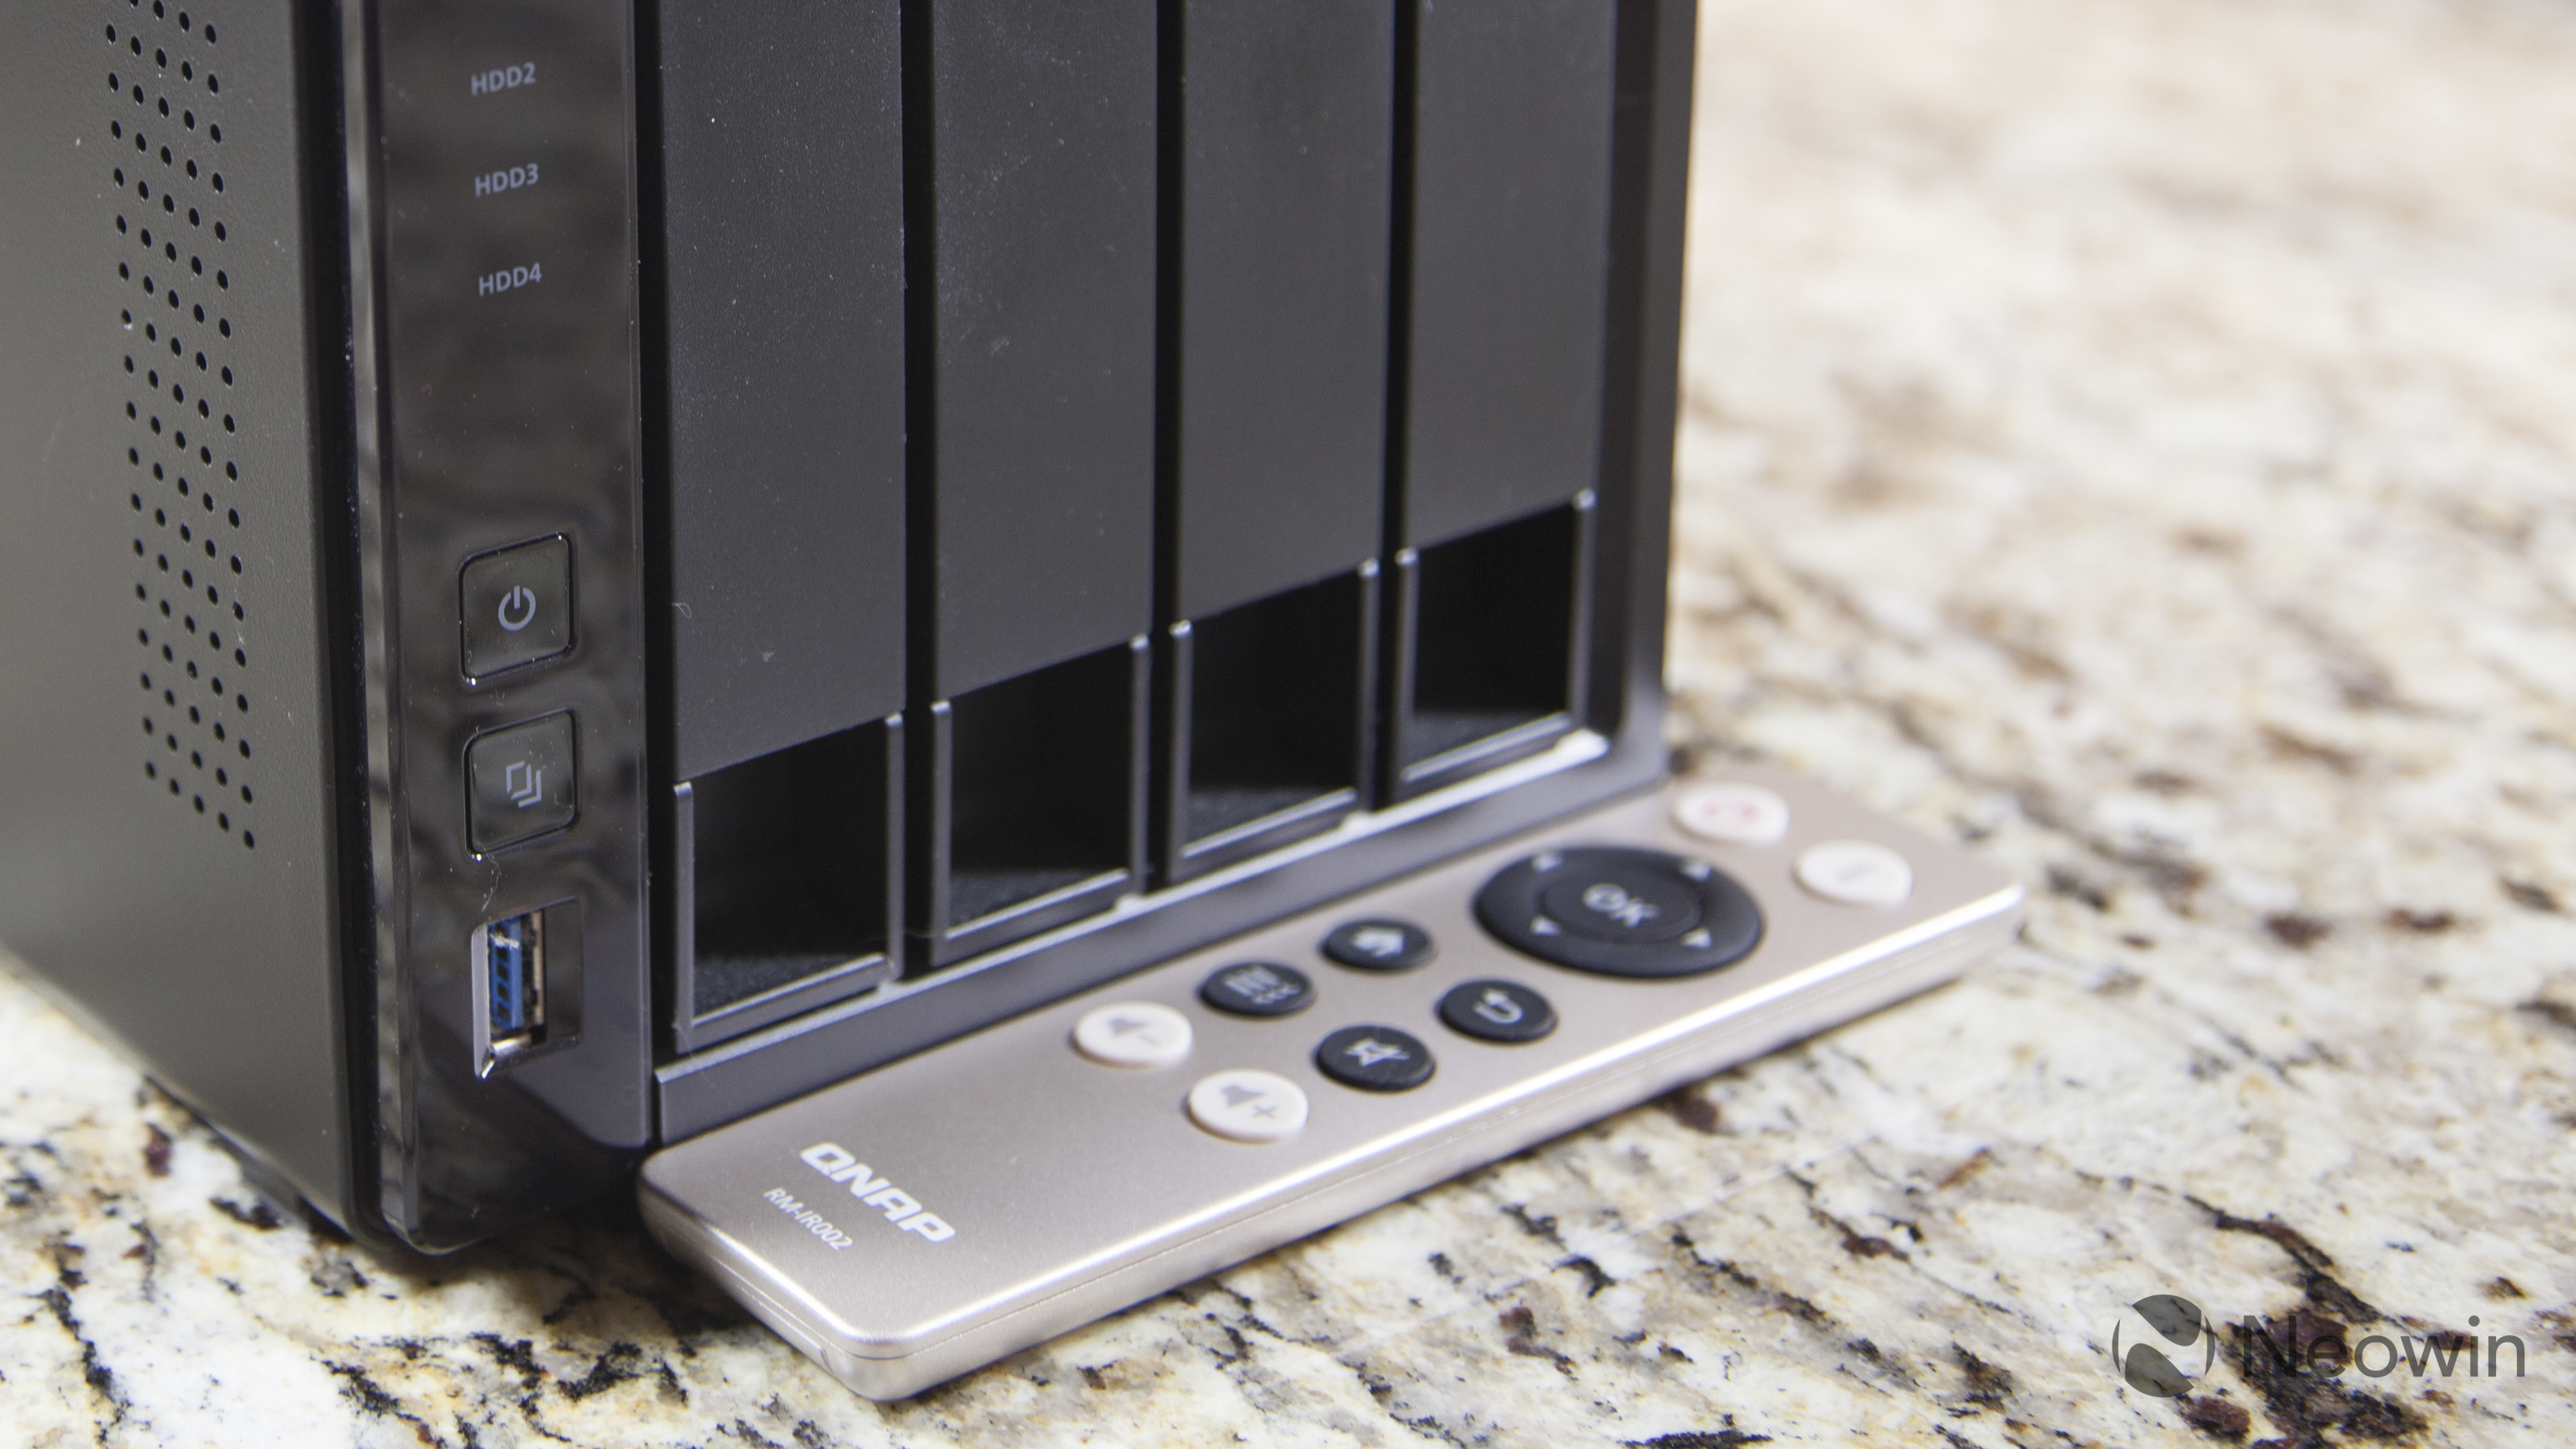 QNAP TS-451+ Review: The do-everything NAS device - Neowin